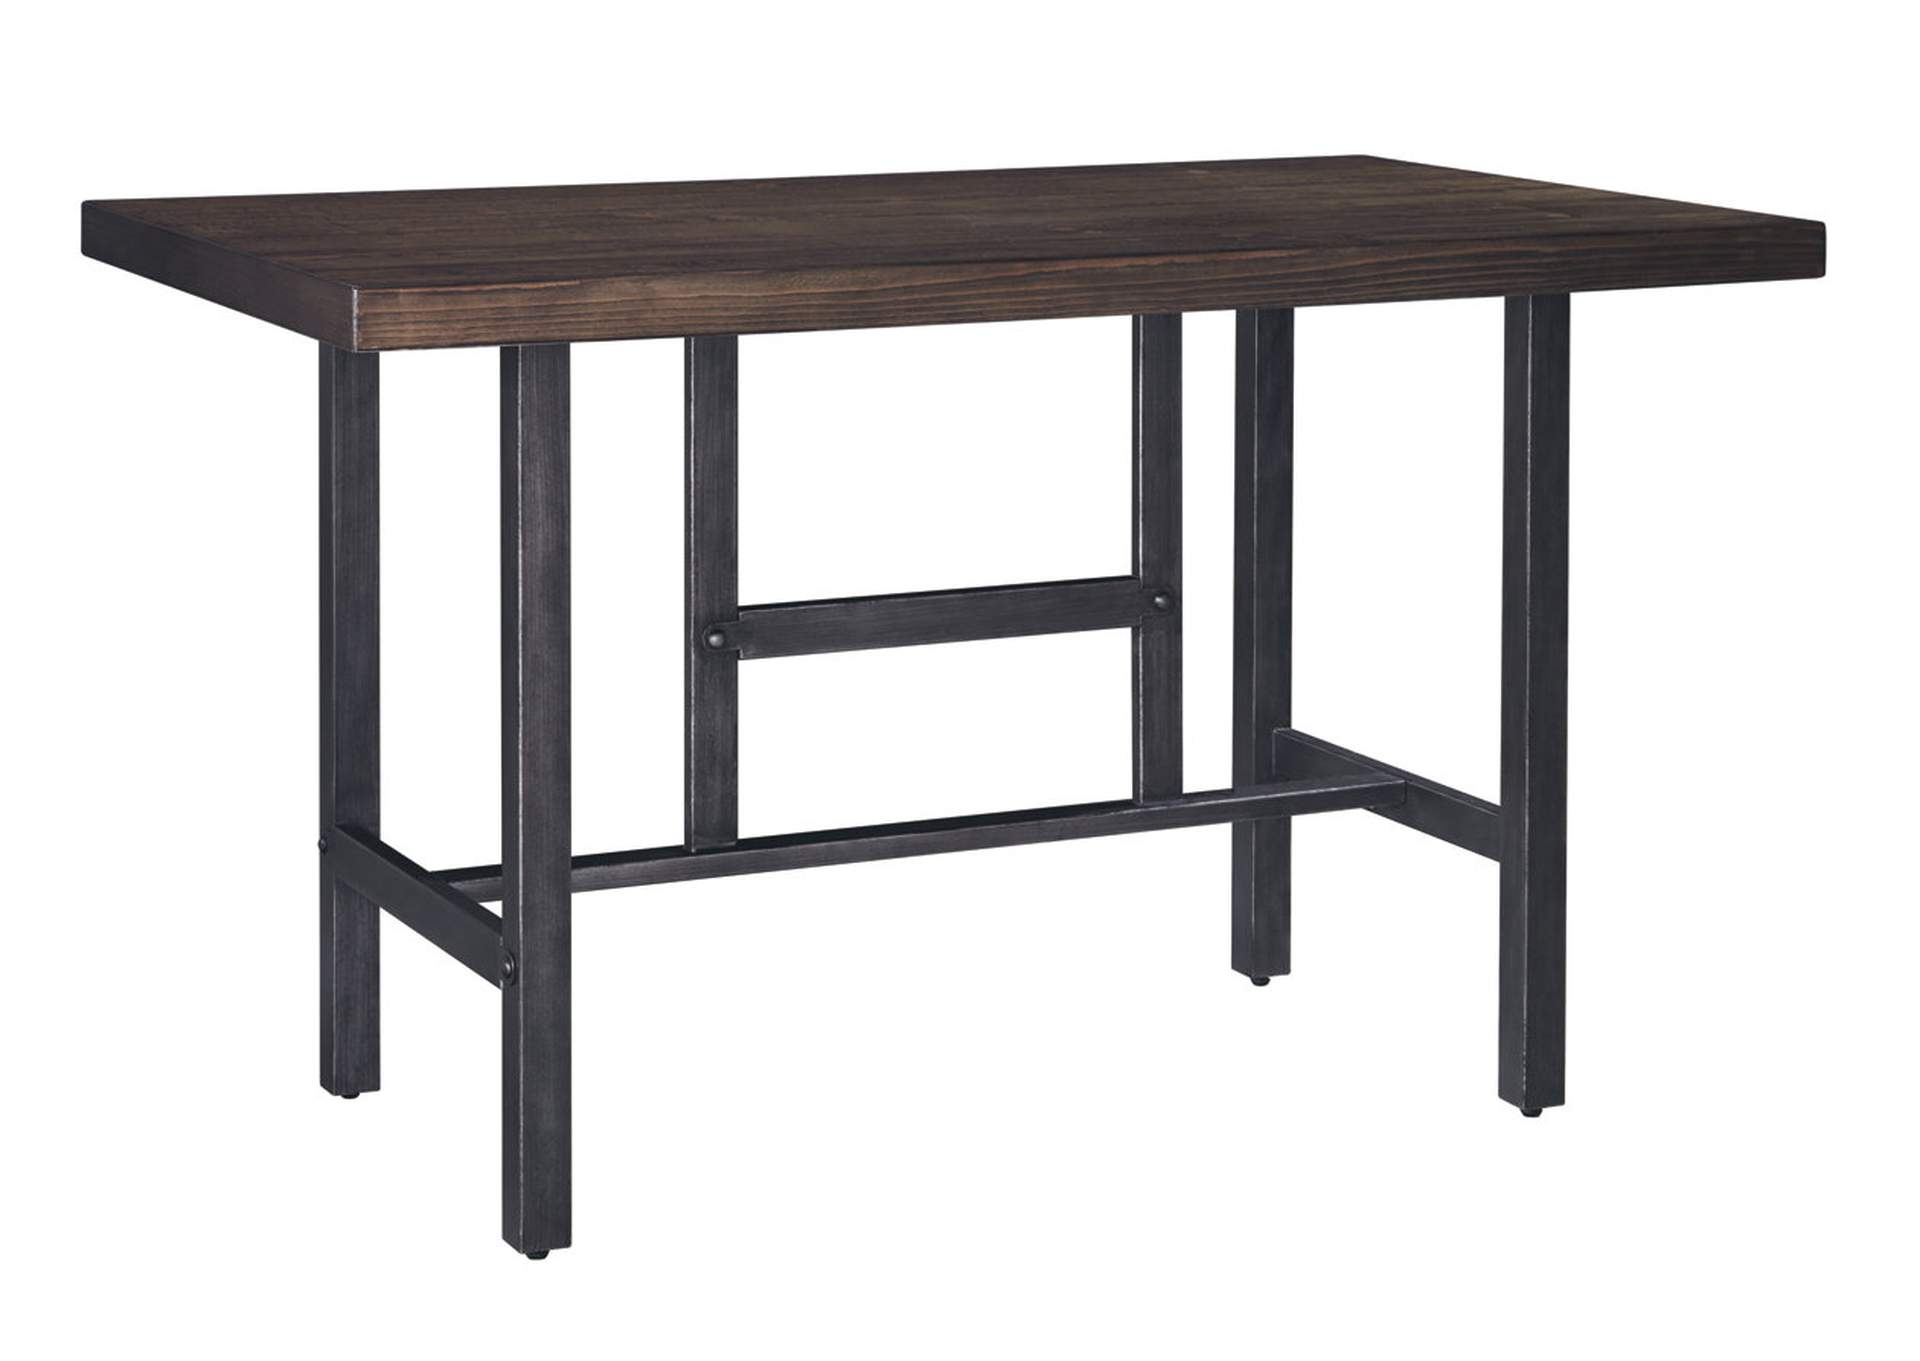 Kavara Medium Brown Rectangular Dining Room Counter Table,ABF Signature Design by Ashley